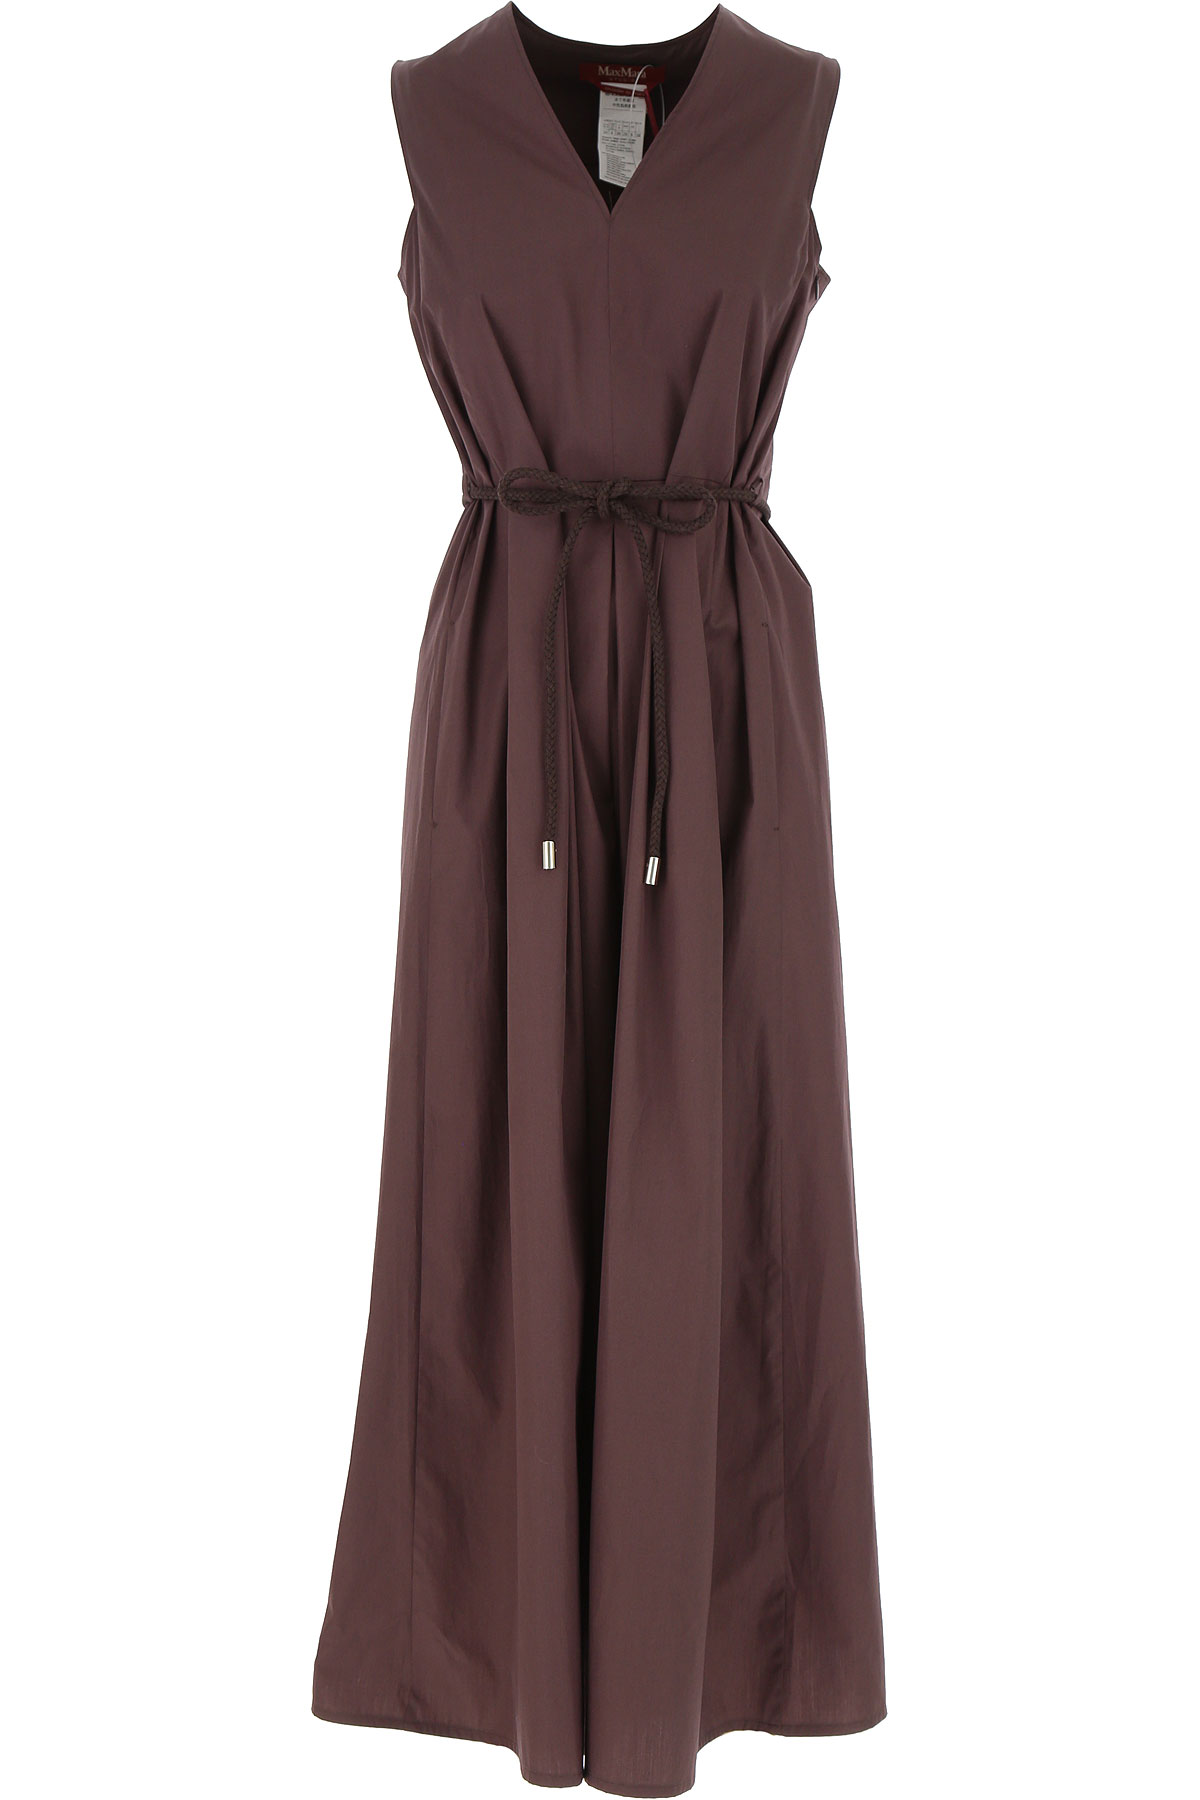 Max Mara Dress for Women, Evening Cocktail Party On Sale, Brown, Cotton, 2019, 2 4